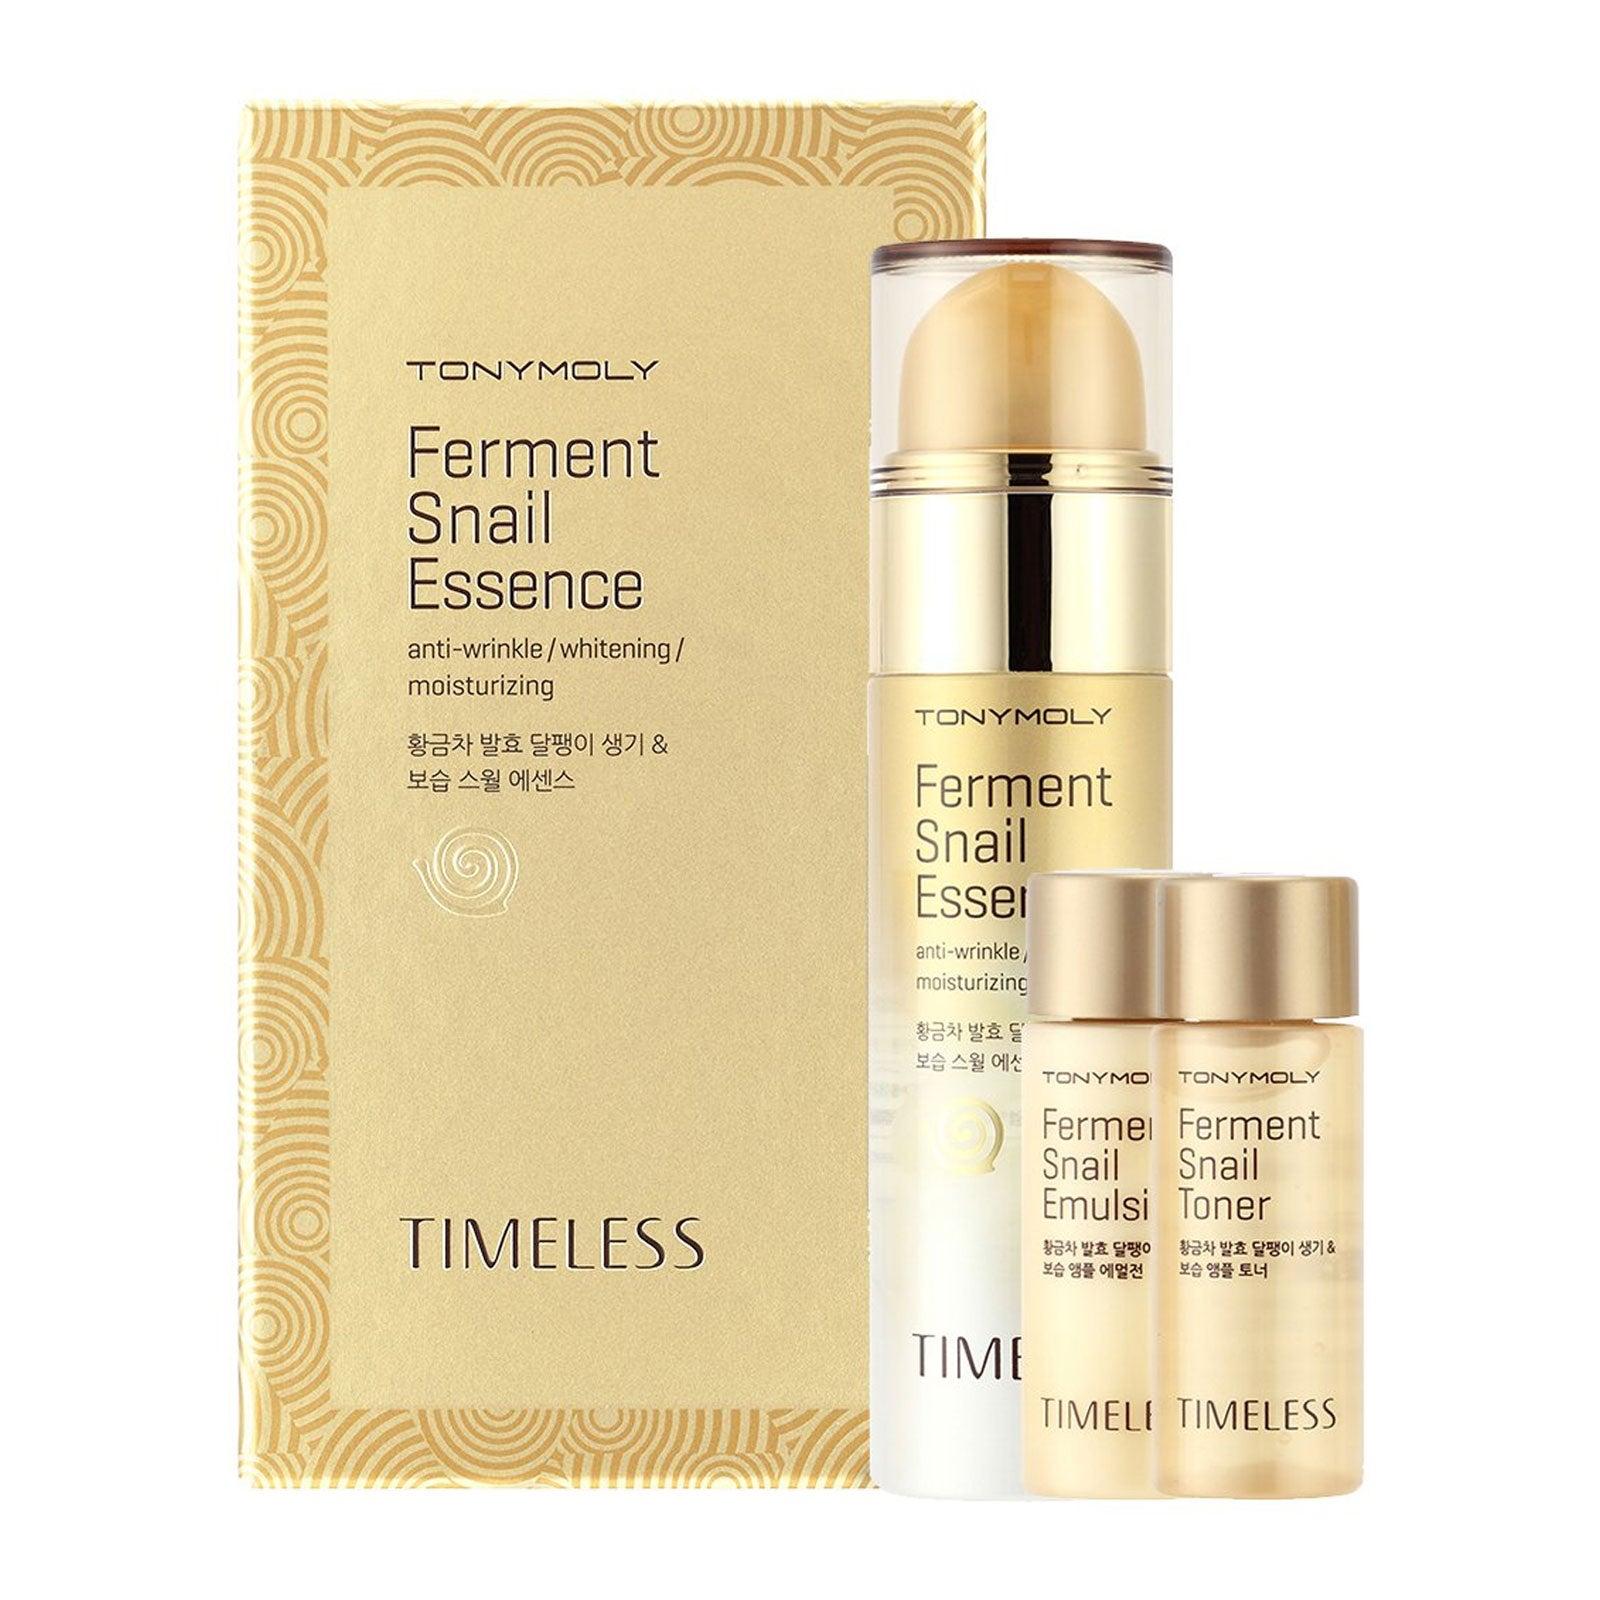 TonyMoly Timeless Ferment Snail Essence Set